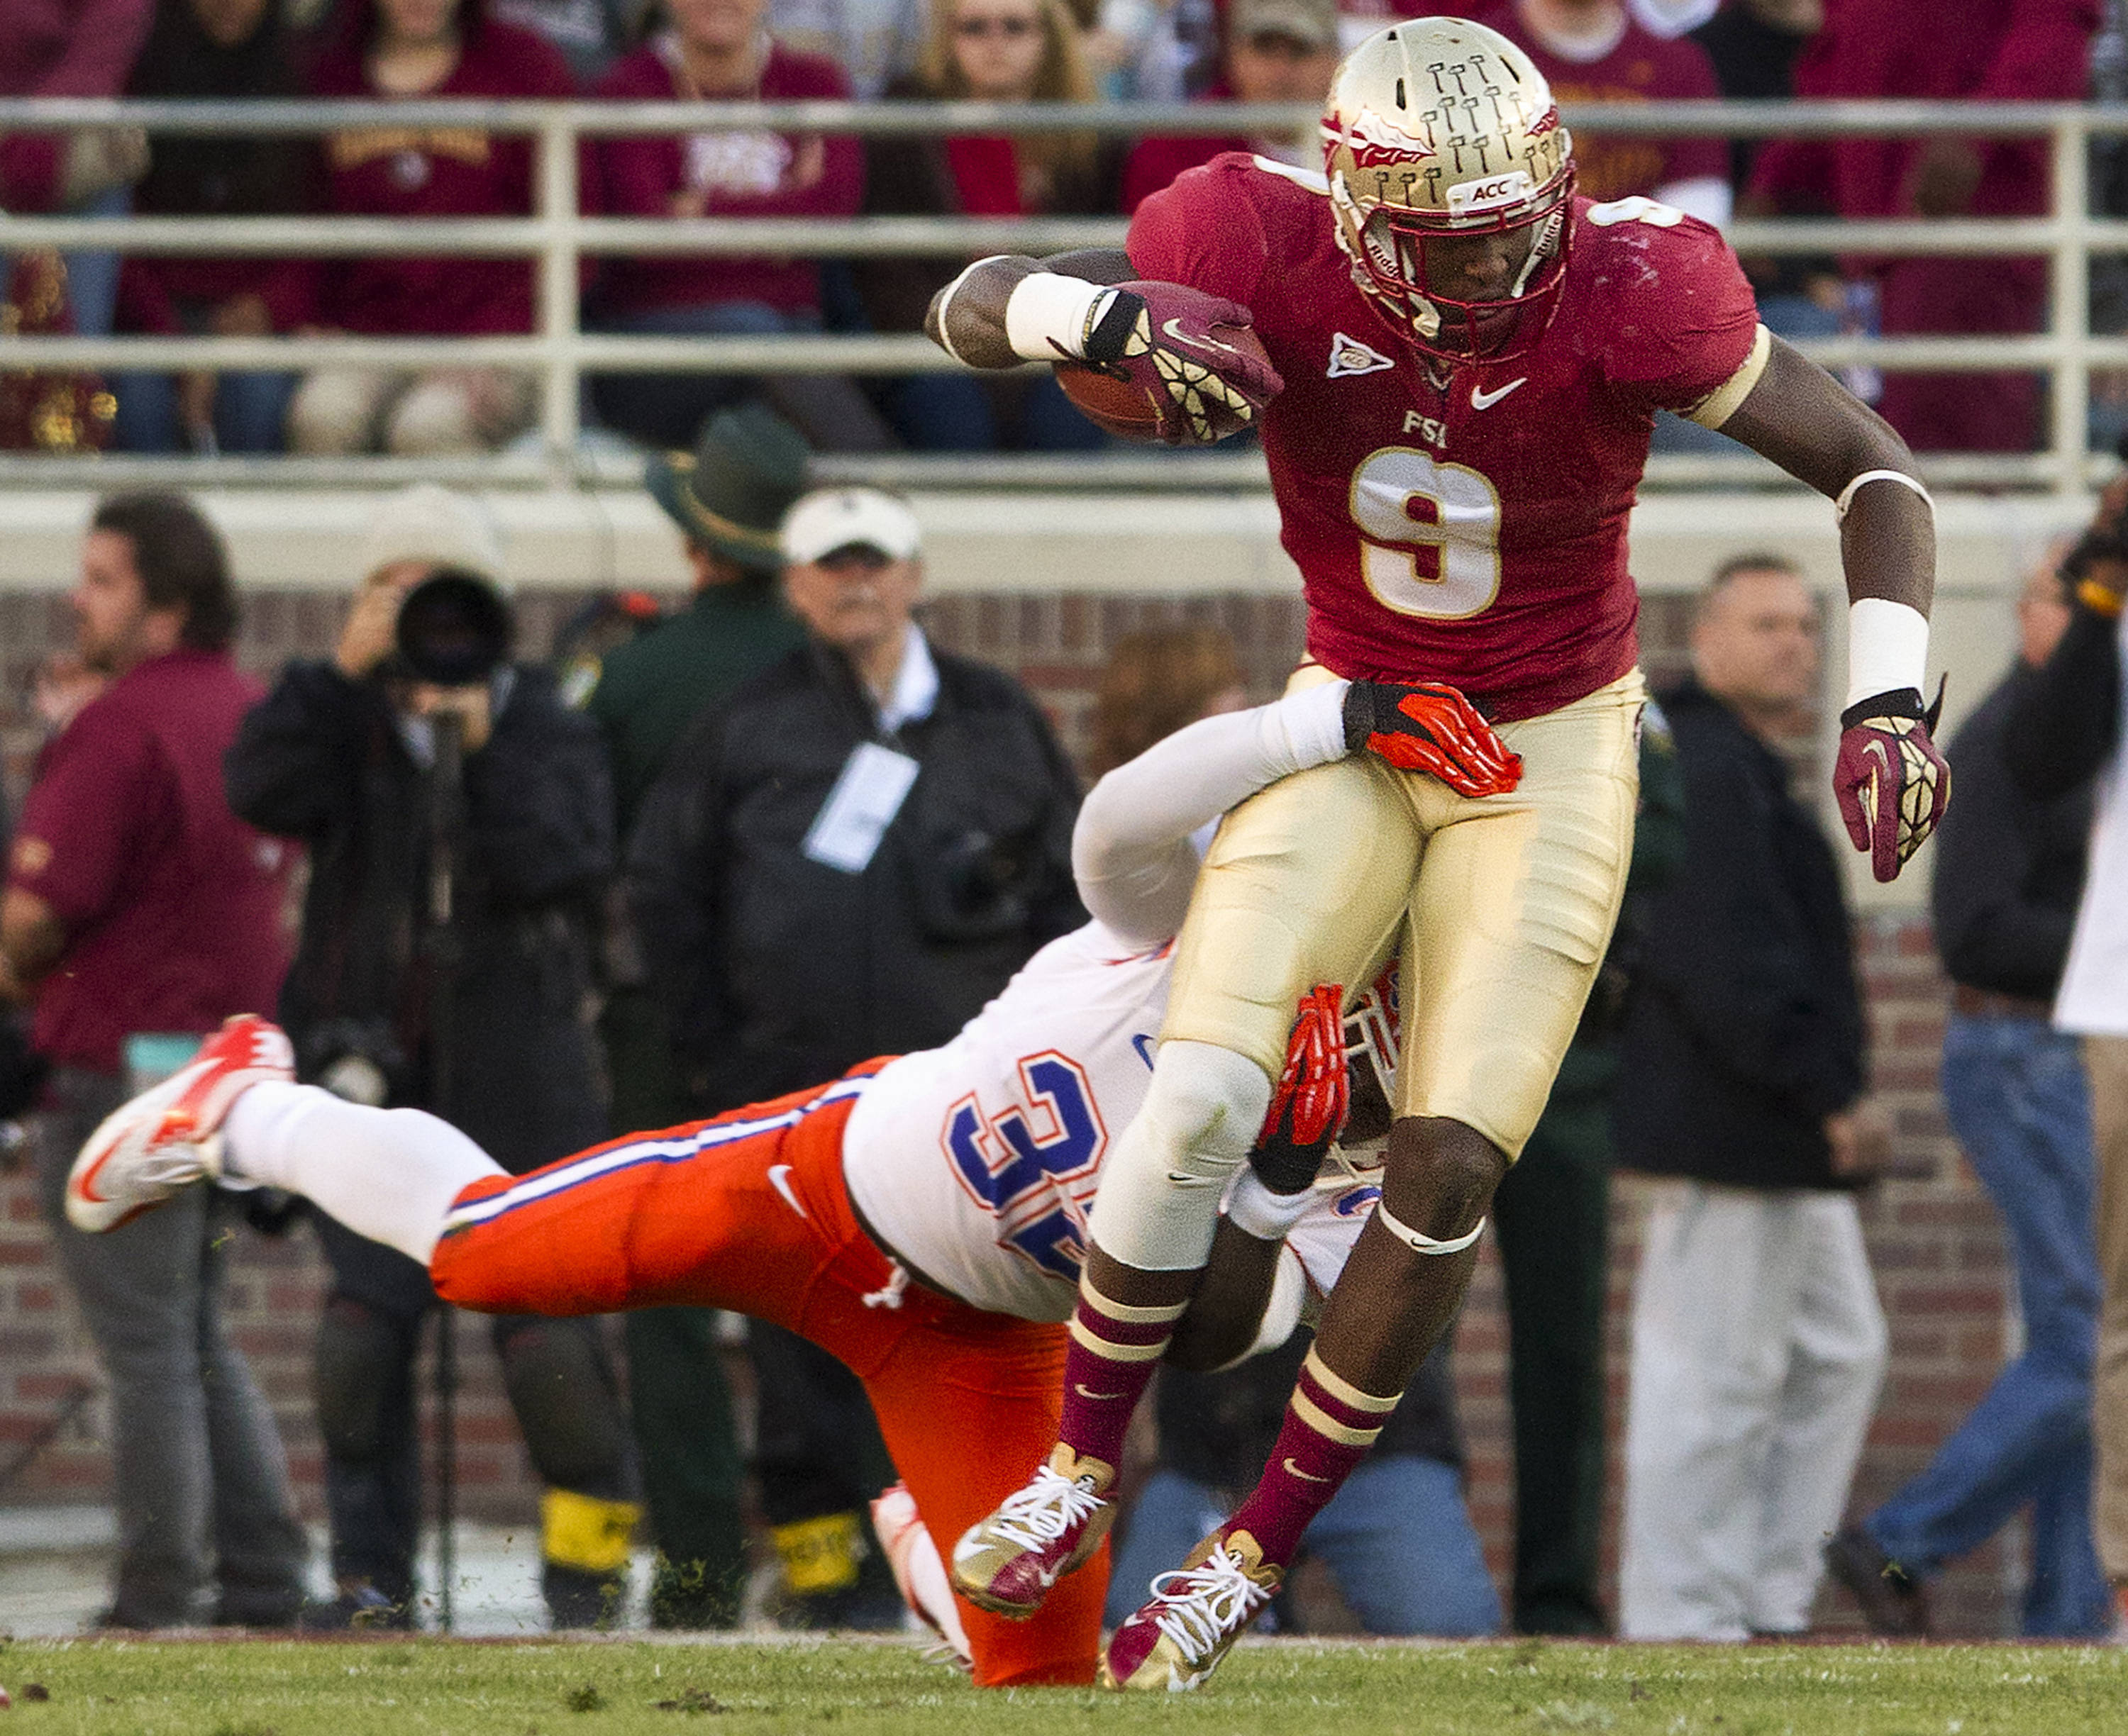 Karlos Williams (9) carries the ball during FSU Football's game against UF on Saturday, November 24, 2012 in Tallahassee, Fla.